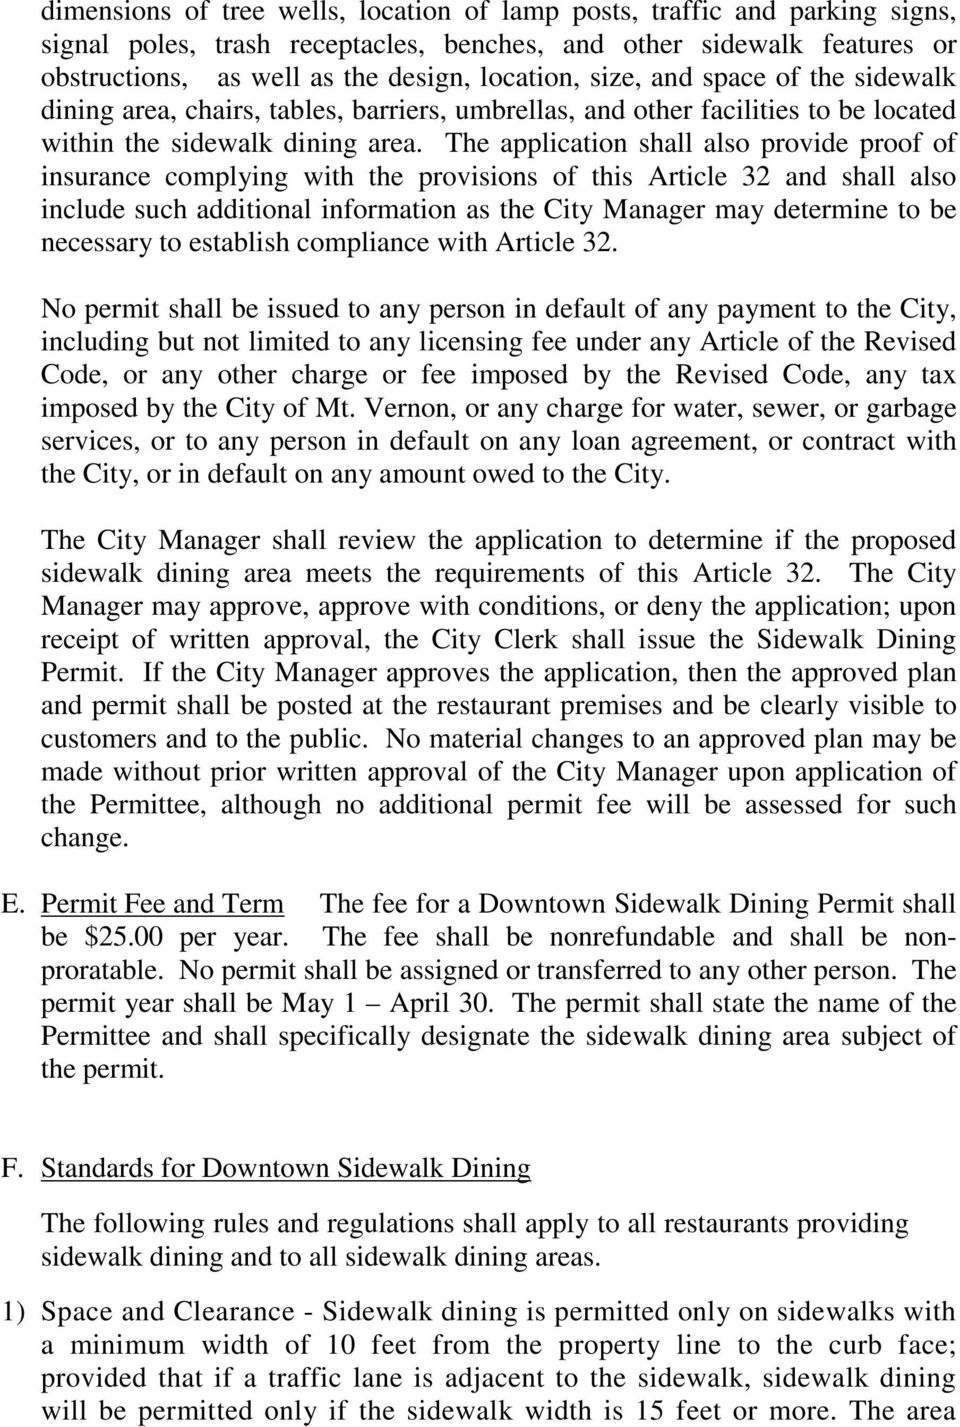 The application shall also provide proof of insurance complying with the provisions of this Article 32 and shall also include such additional information as the City Manager may determine to be